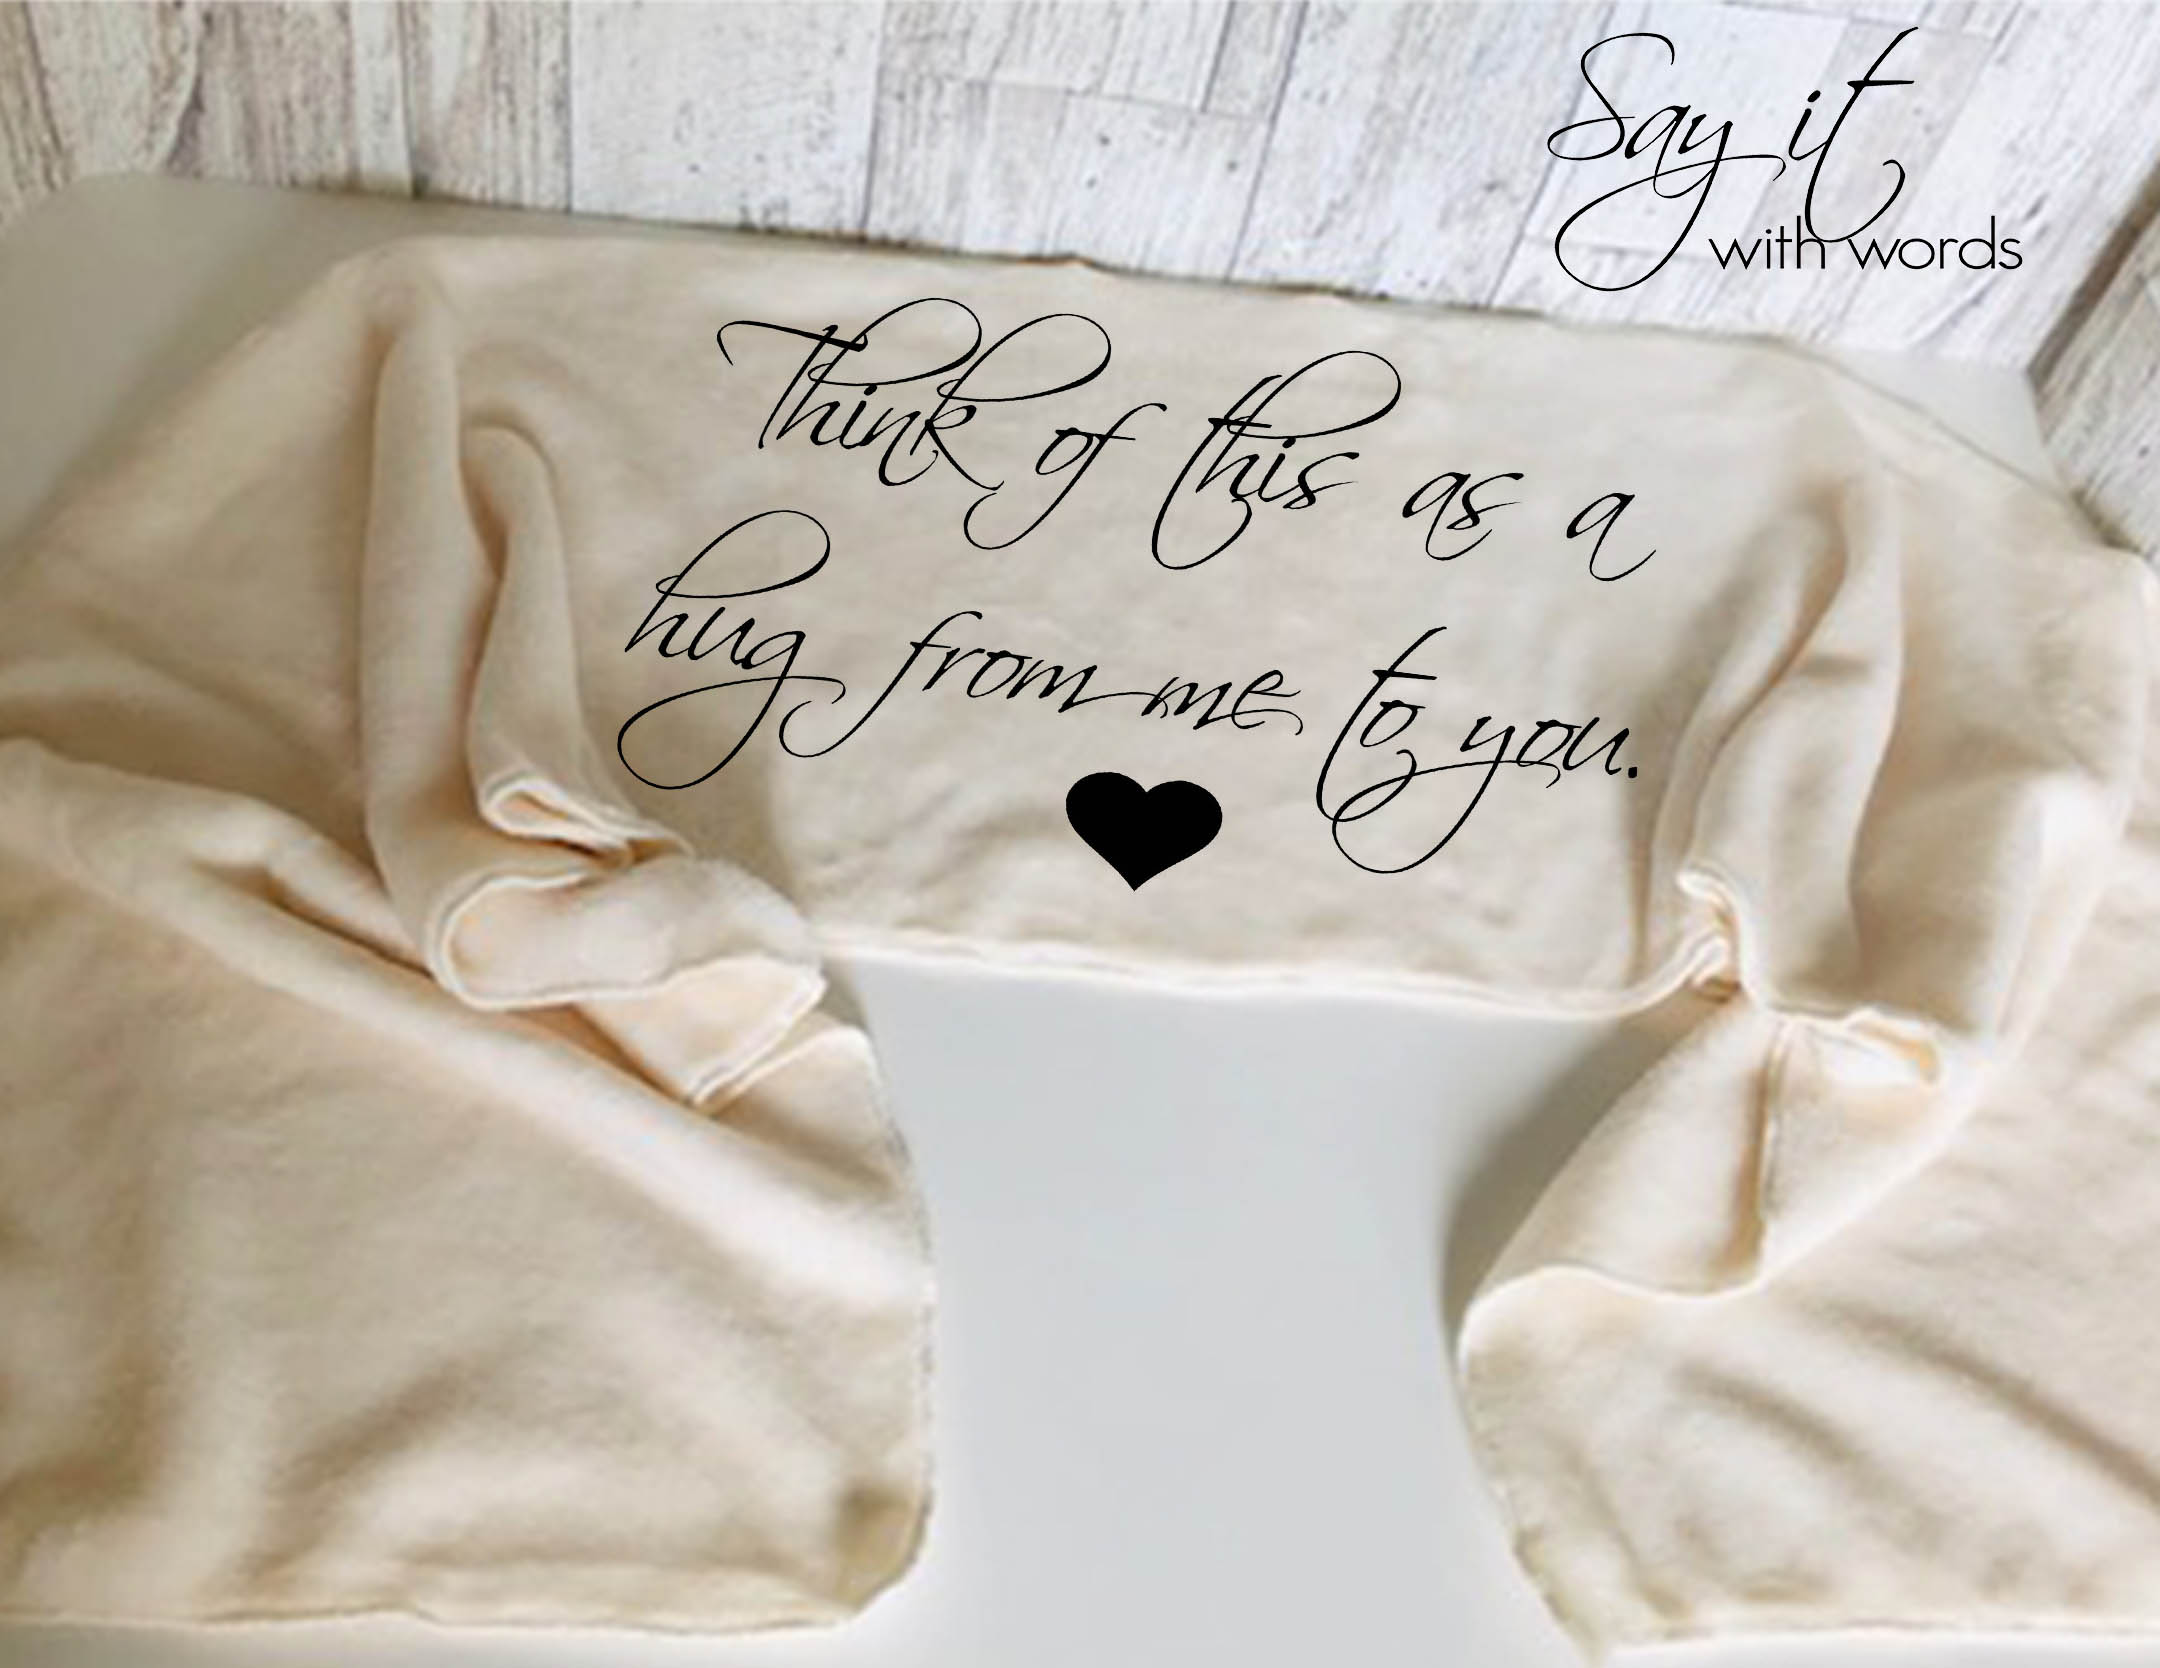 Personalized Fleece Scarf with Words, Think of This as  a Hug from Me to You